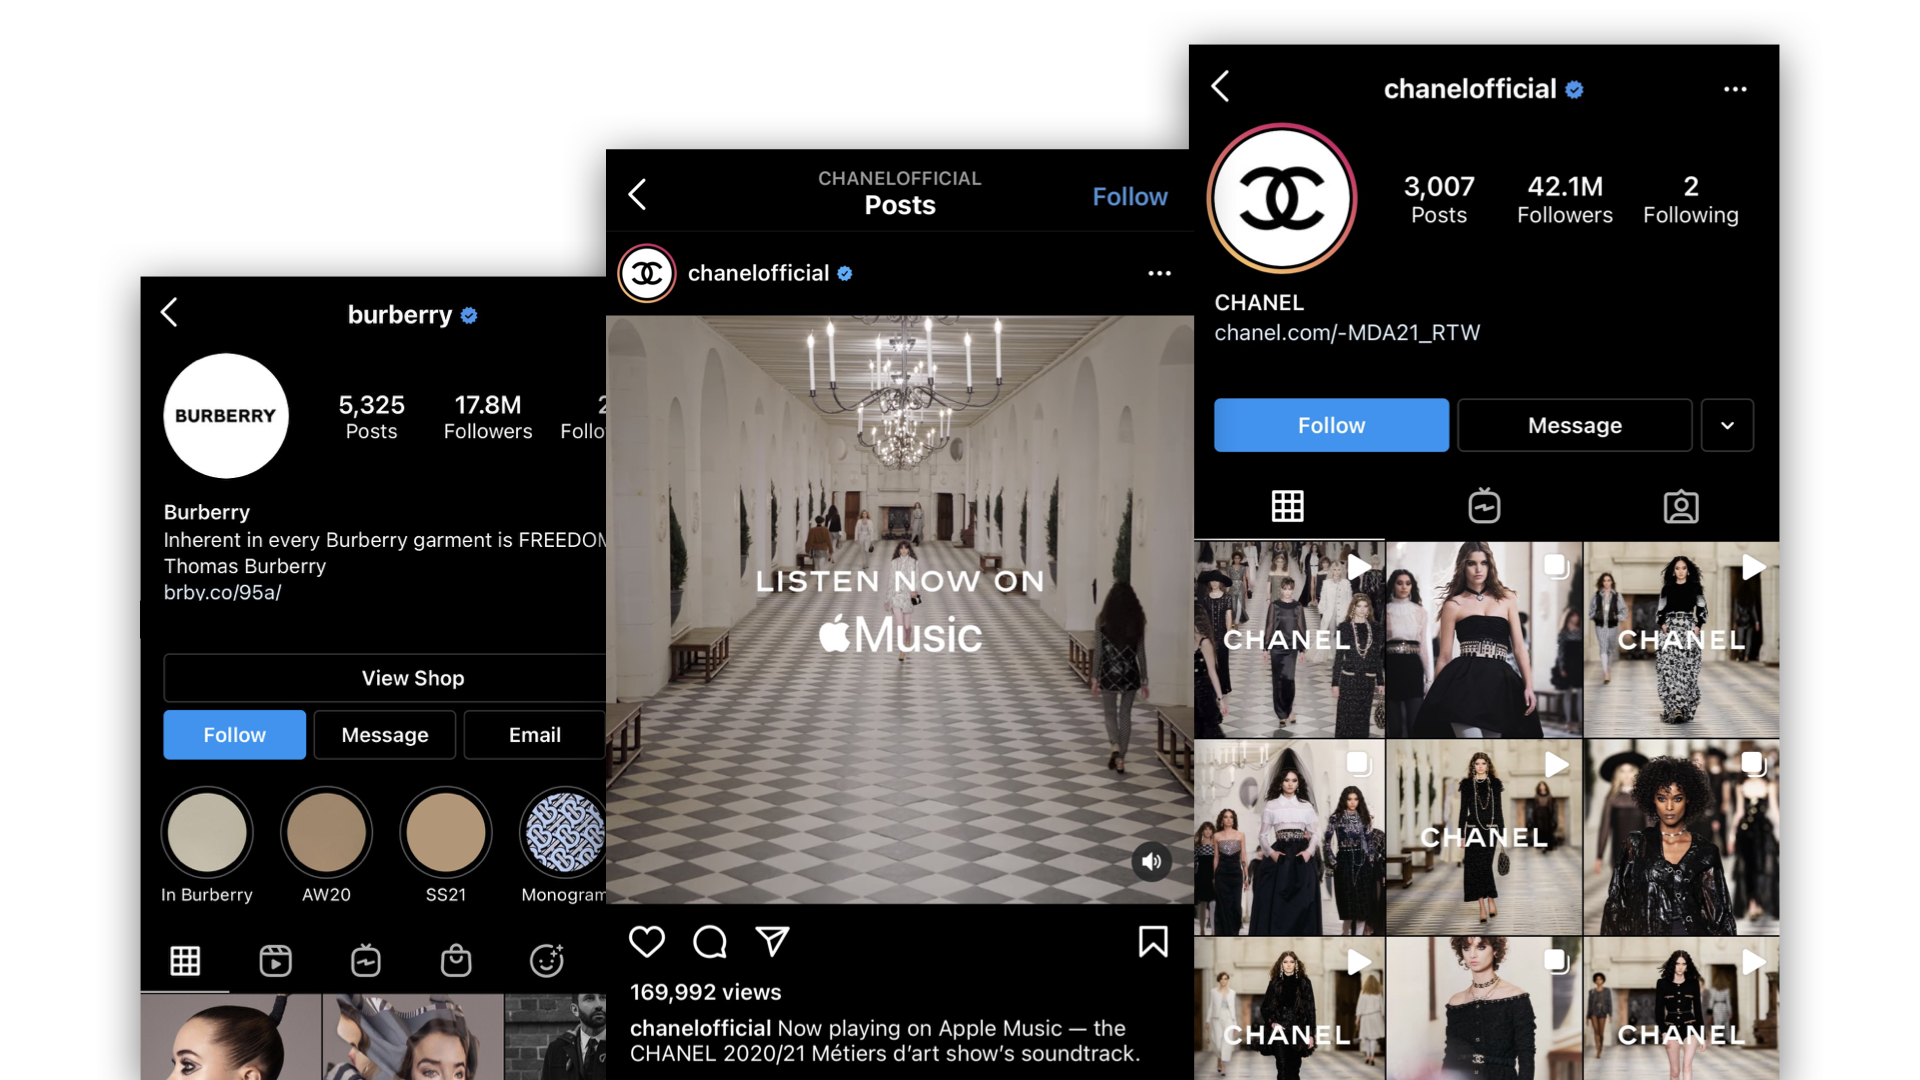 G & Co. is a luxury marketing agency: Luxury brands are taking to social media to reach younger consumers